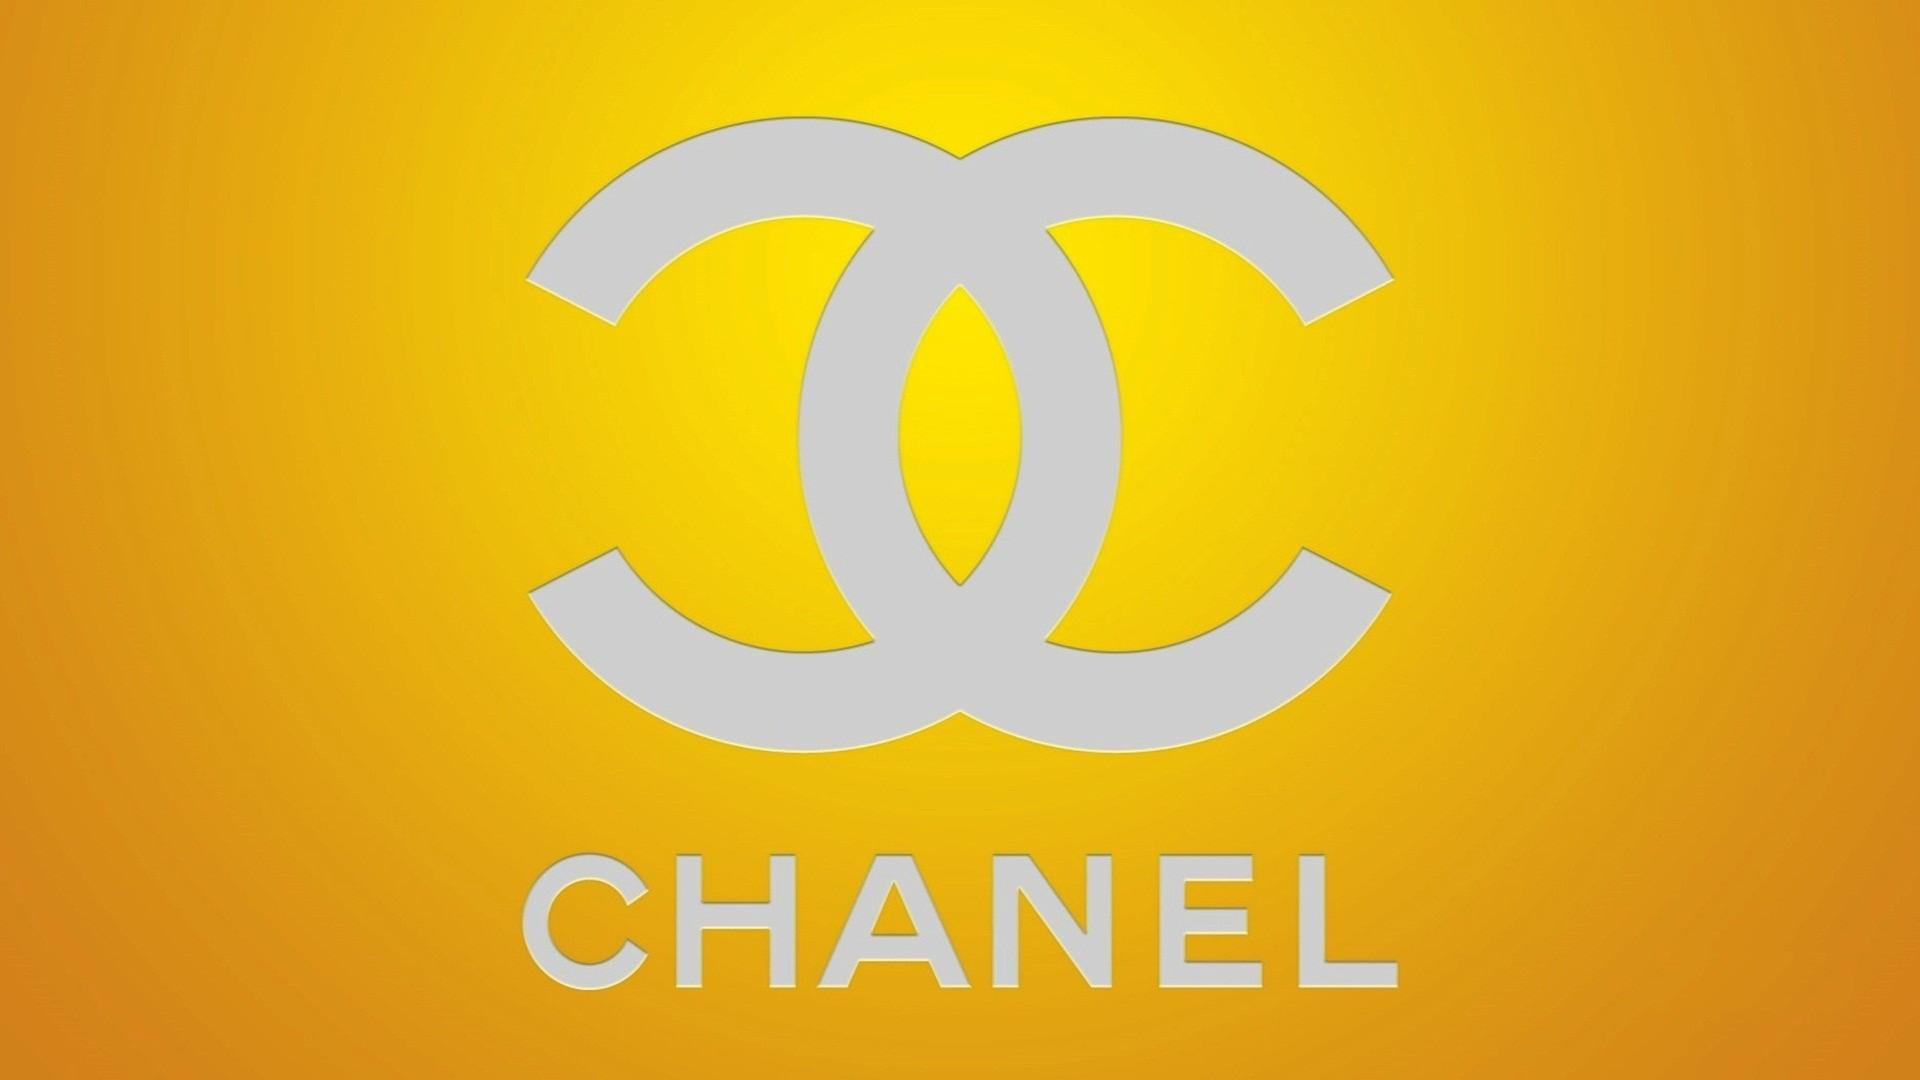 Chanel Brand Wallpapers Wallpaper Cave